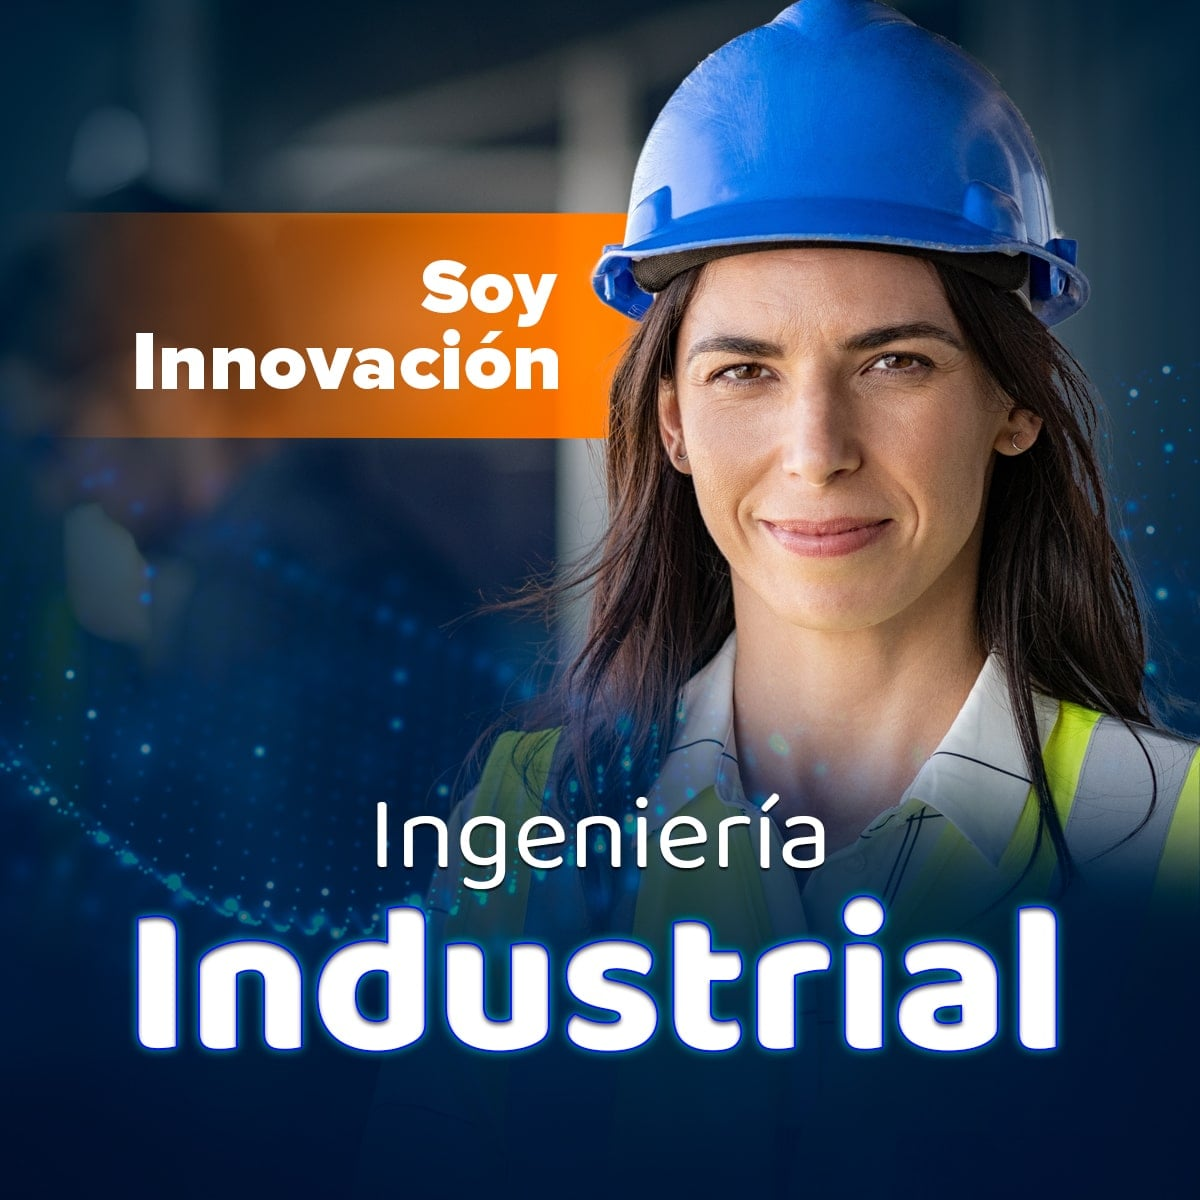 Ing. Industrial